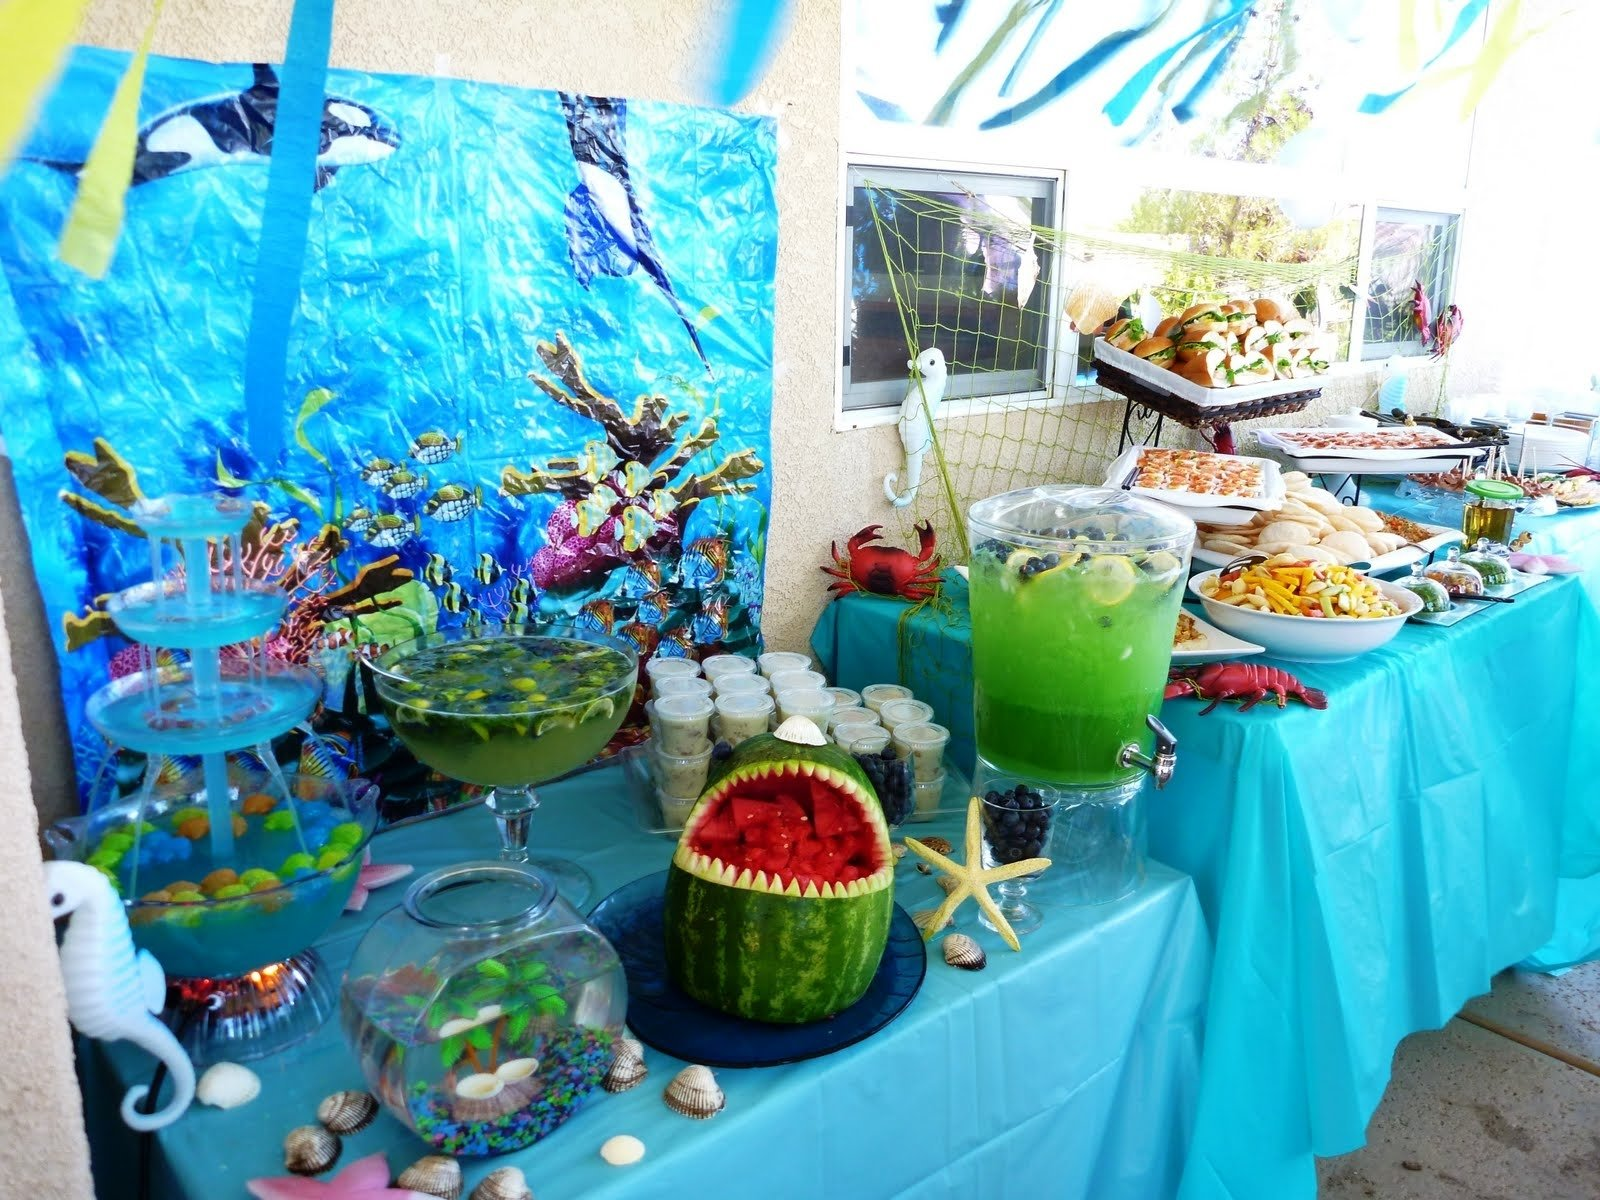 10 Gorgeous Under The Sea Theme Ideas little girl birthday with a under the sea theme reminds of the 2021